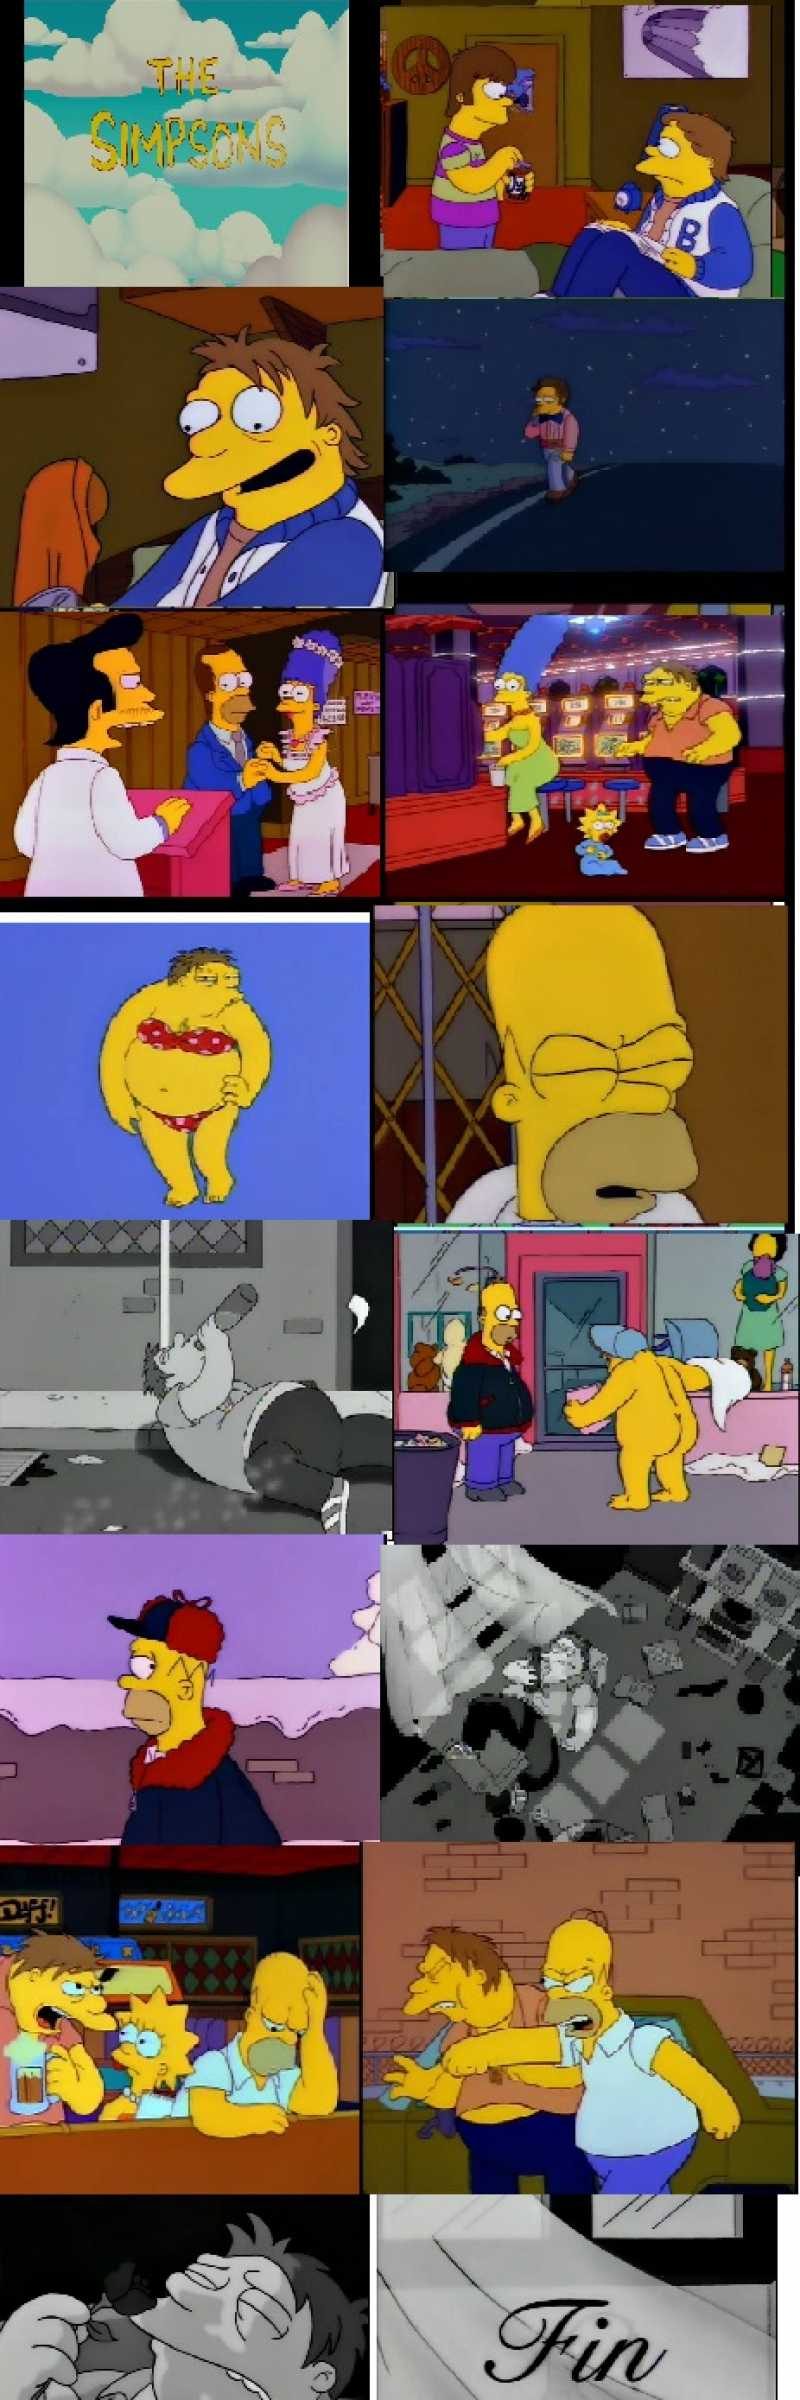 After a drunken college tryst, Barney has never forgotten Homer, even after he marries a compulsive gamblor and rejects his numerous attempts at seduction, sending Barney spiraling into a cycle of beer and sour defeat.